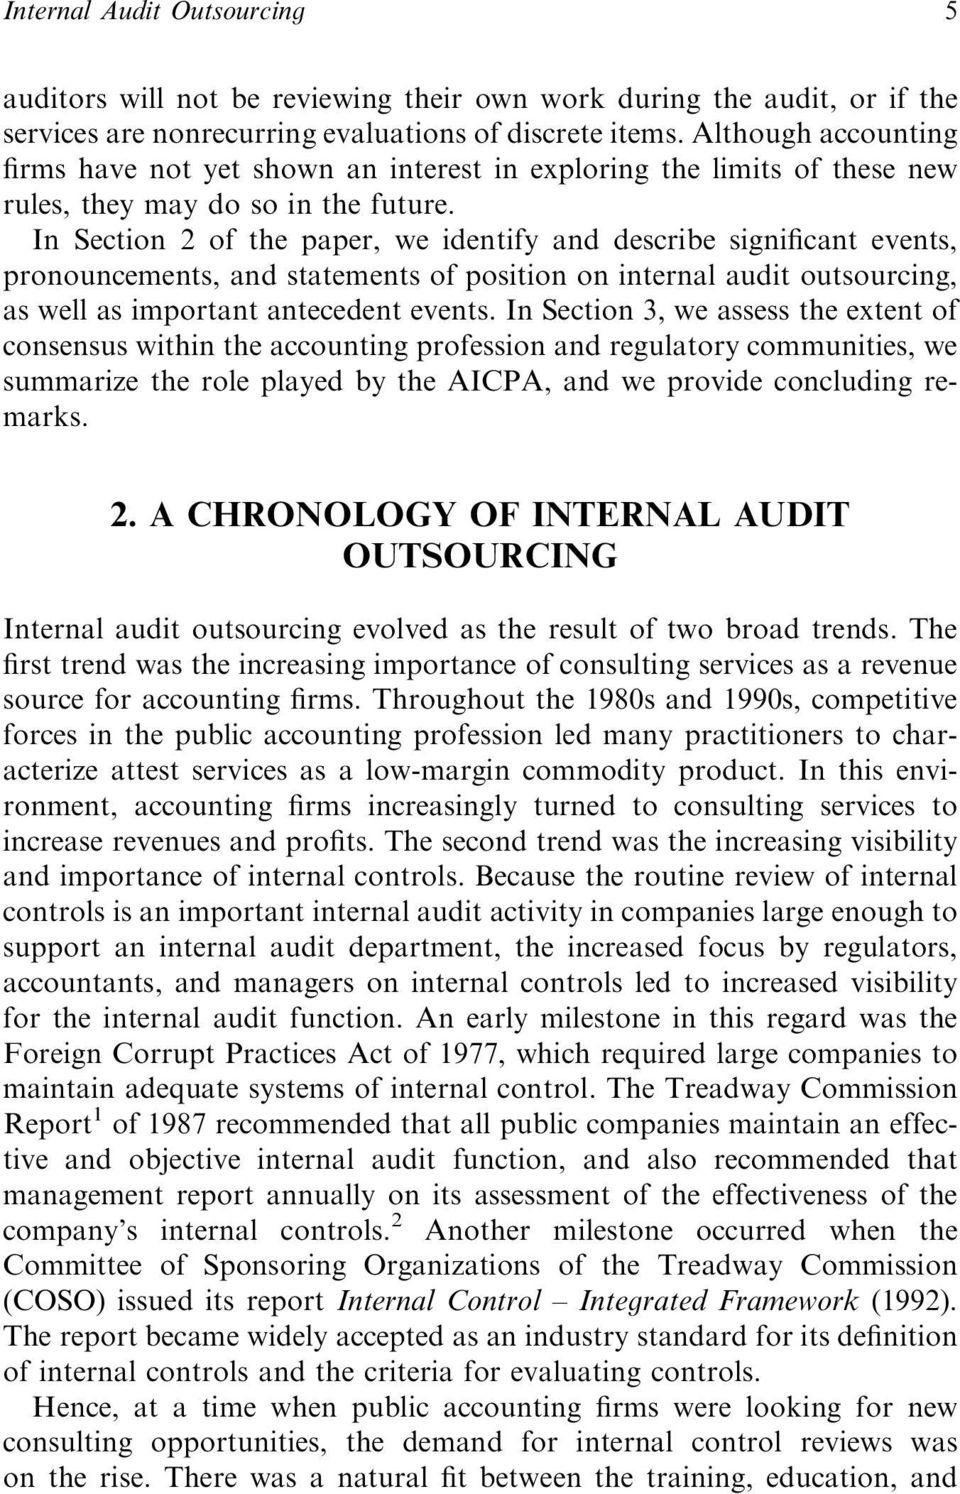 In Section 2 of the paper, we identify and describe significant events, pronouncements, and statements of position on internal audit outsourcing, as well as important antecedent events.